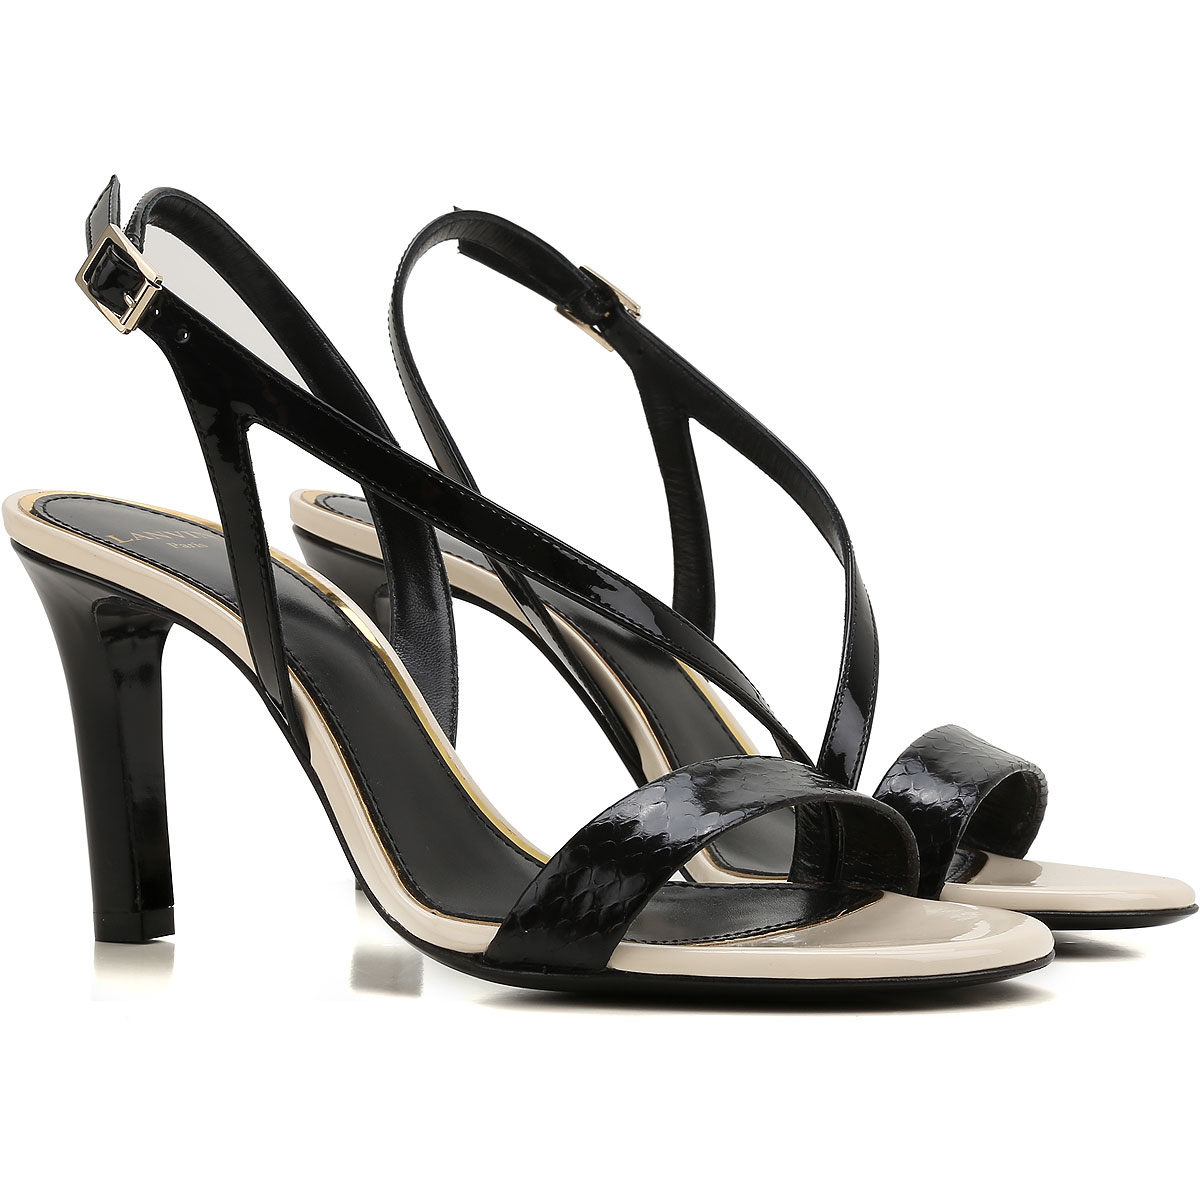 Lanvin Sandals for Women On Sale in Outlet, Black, Leather, 2019, 10 6 8.5